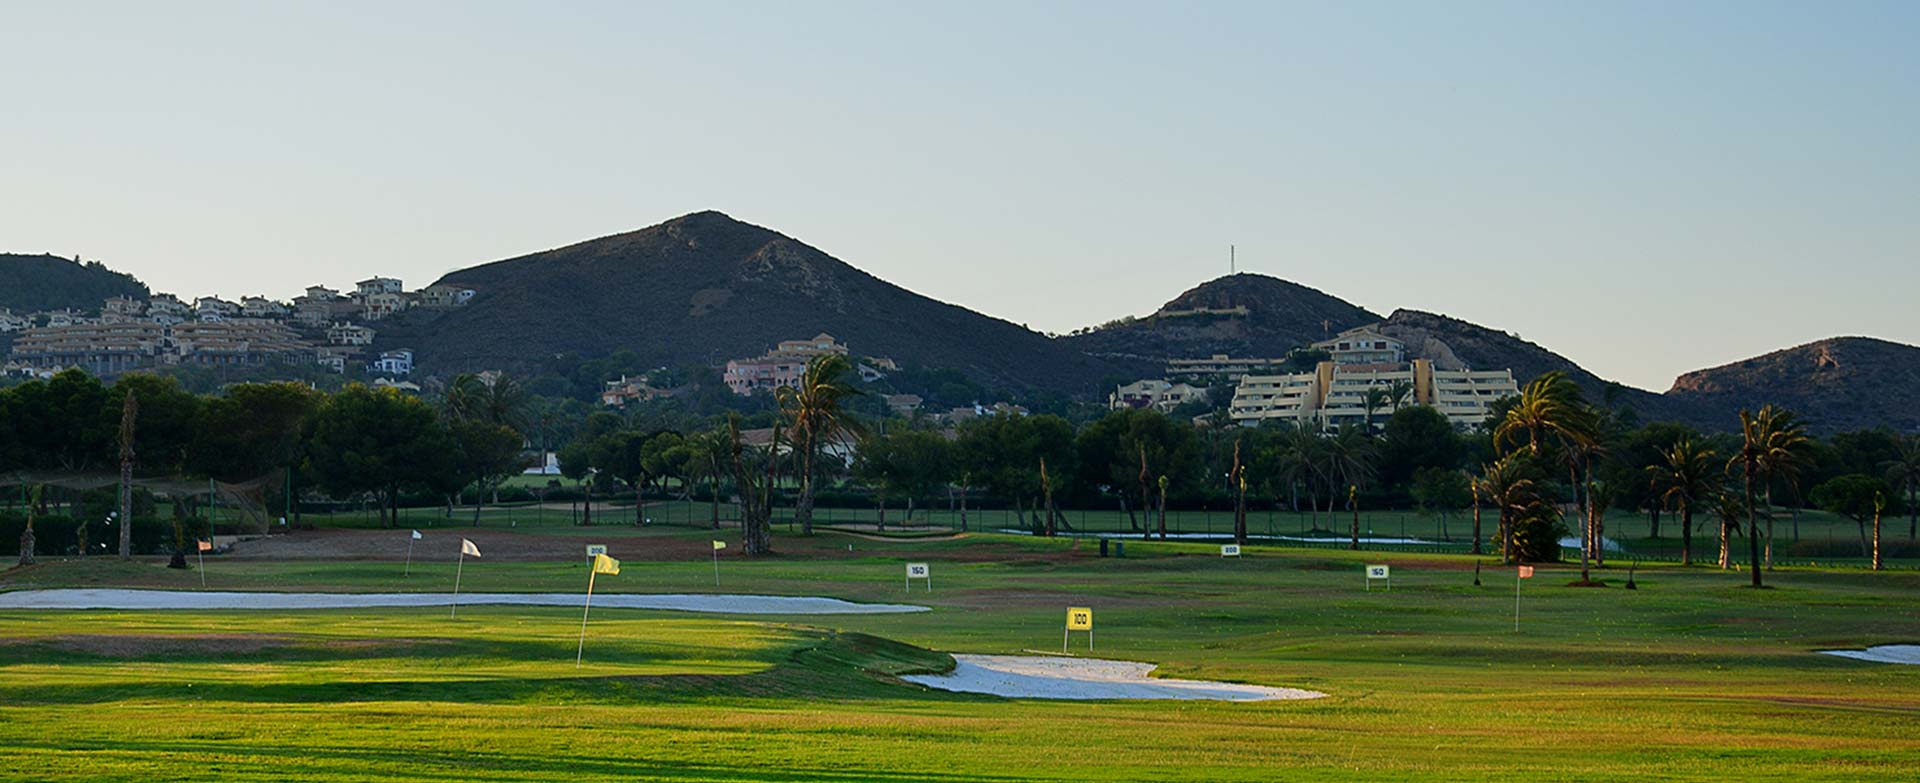 Exclusive La Manga Club Card FREE for our guests